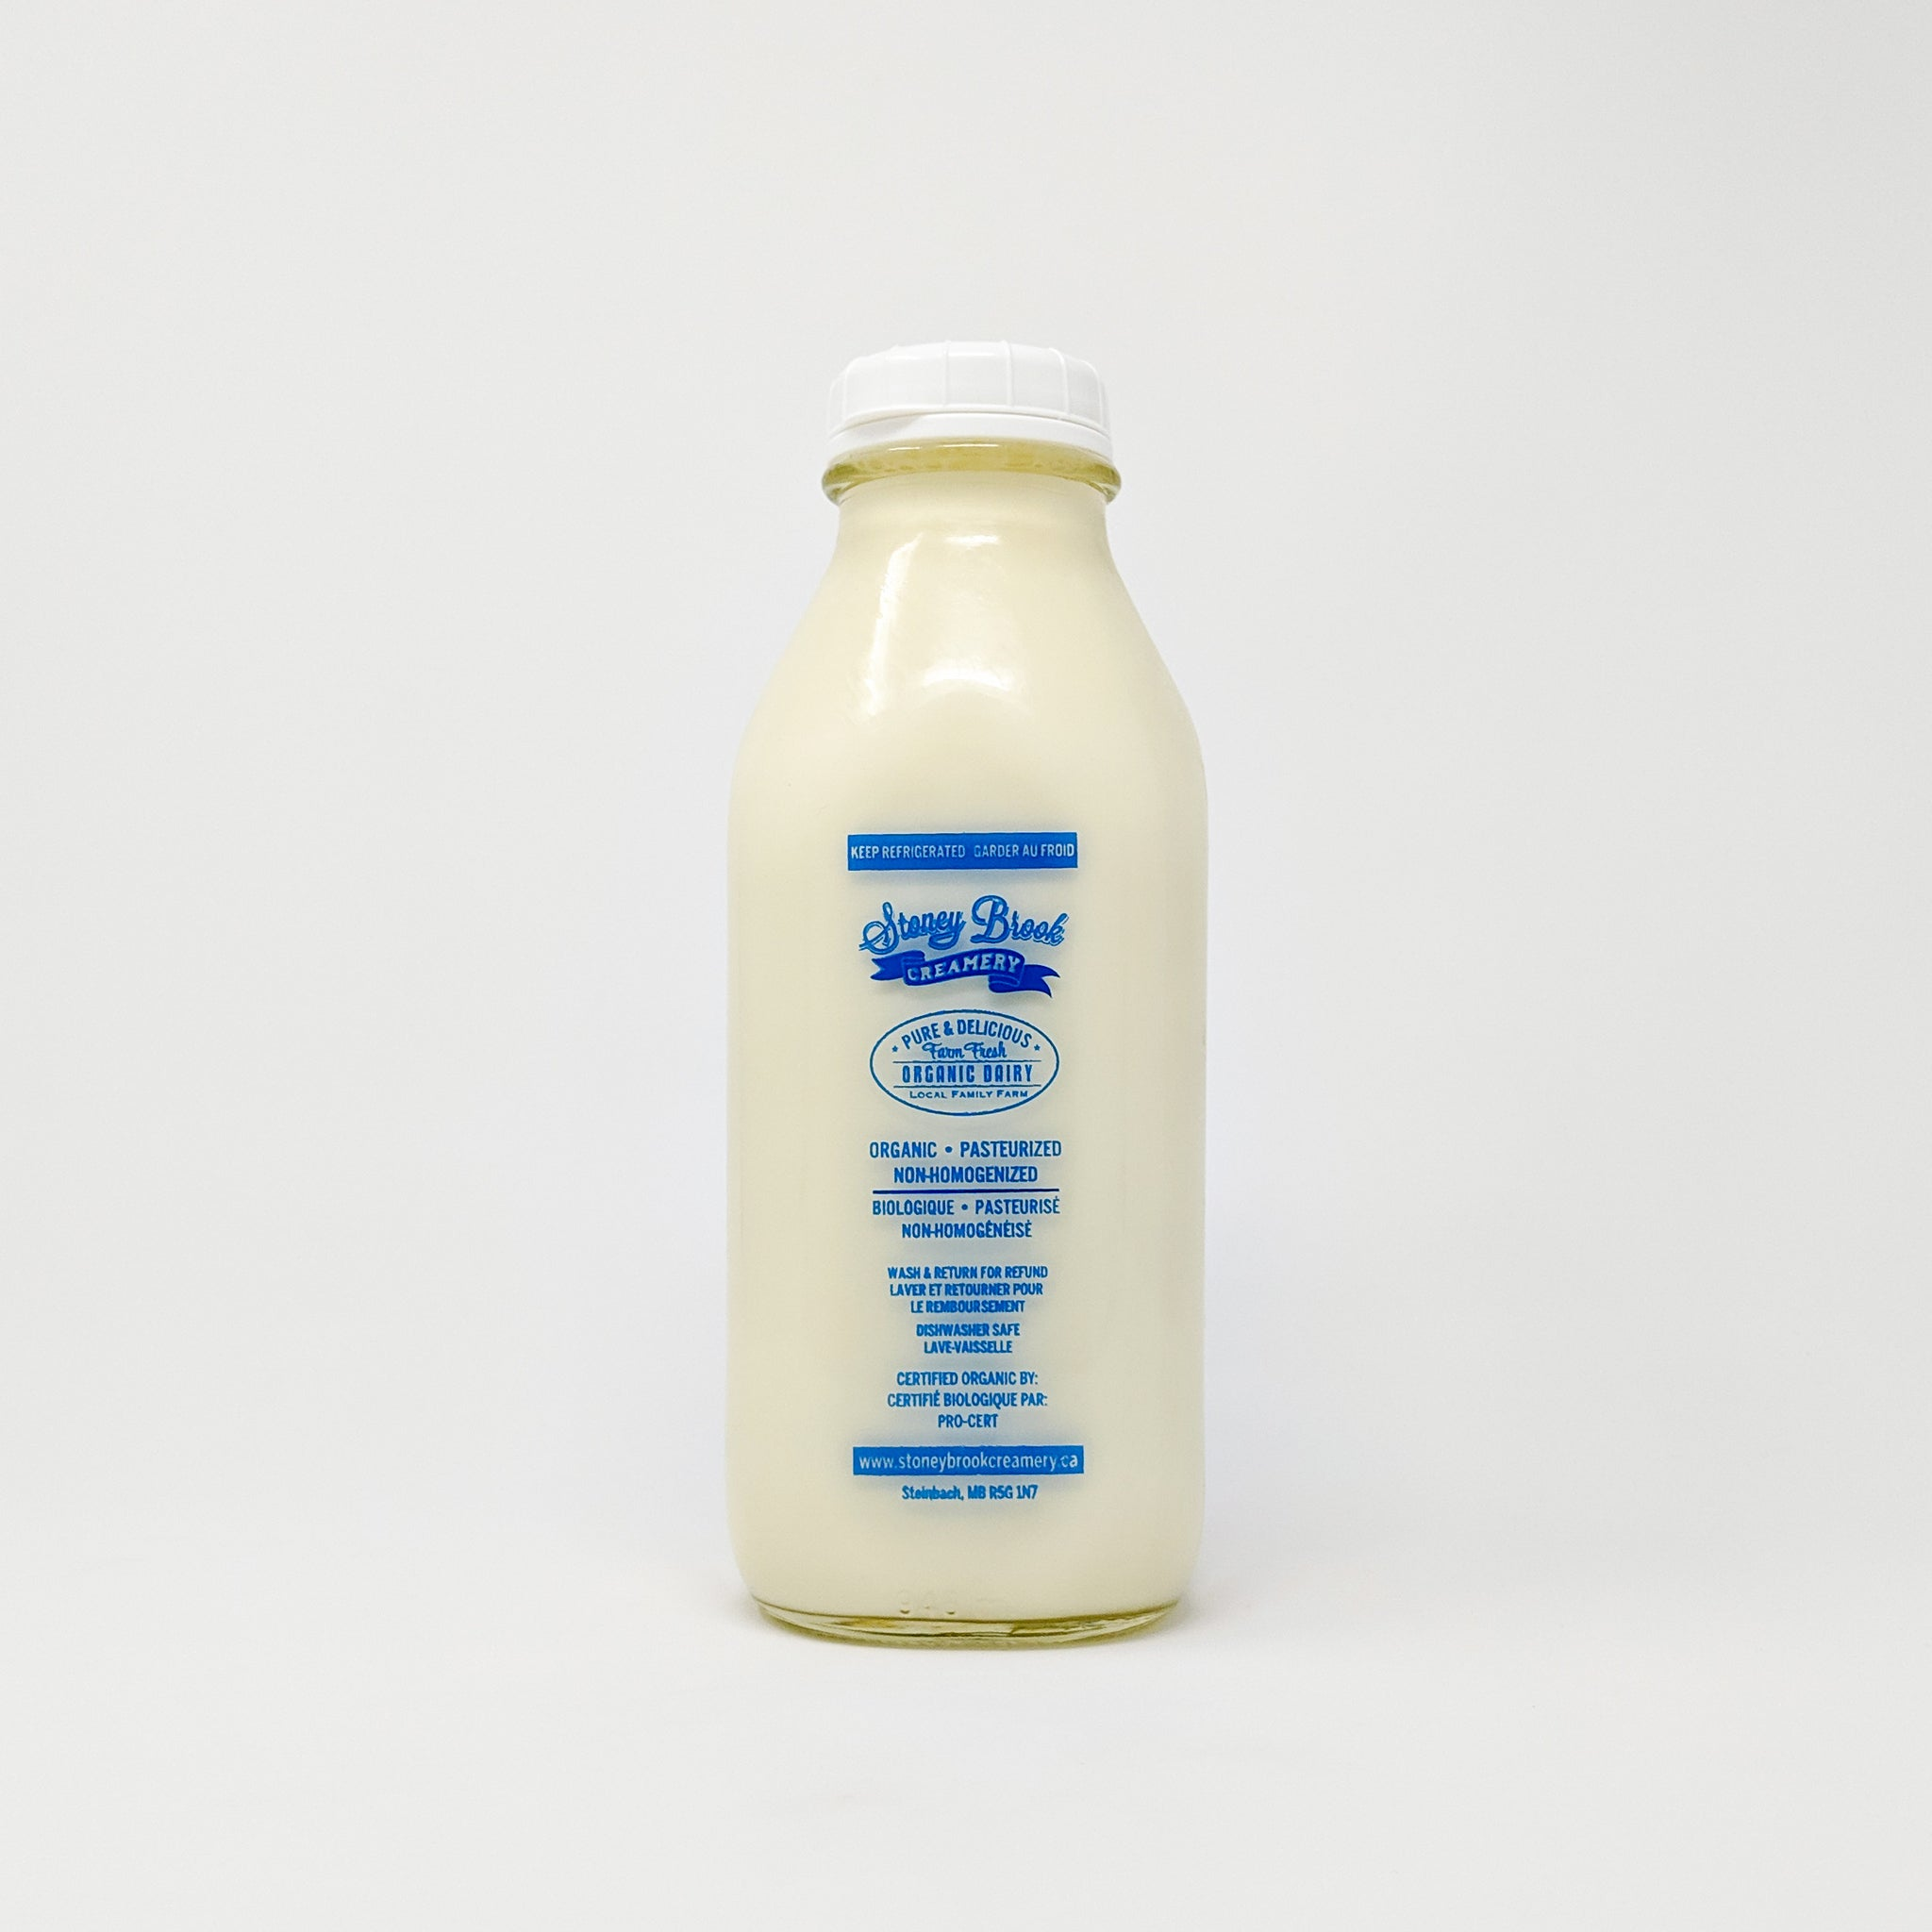 Organic Milk - Stoney Brook Creamery (bottle deposit included)